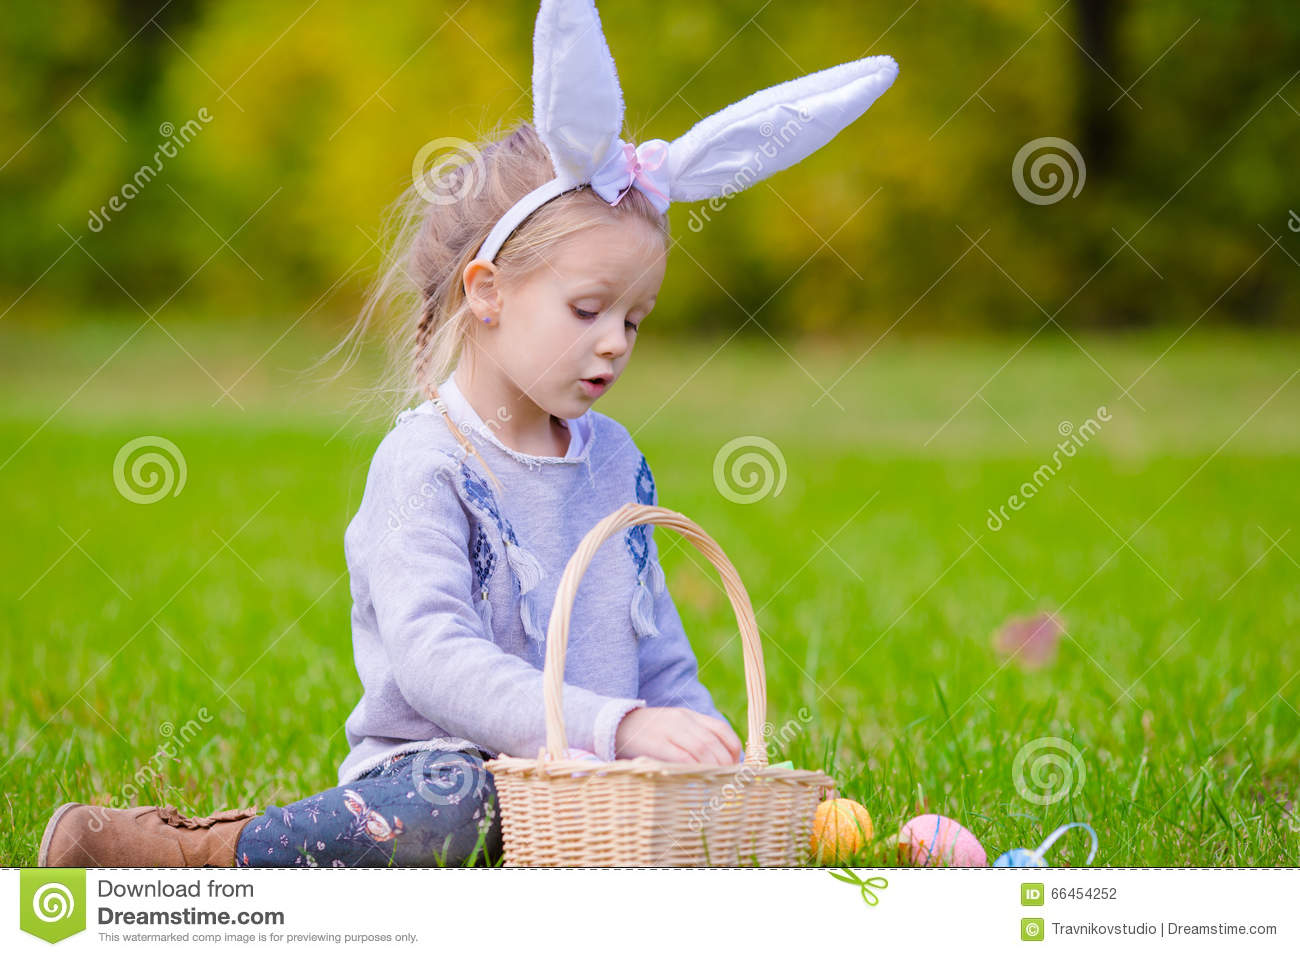 Cute Little Girl Wearing Bunny Ears Holding A Basket With